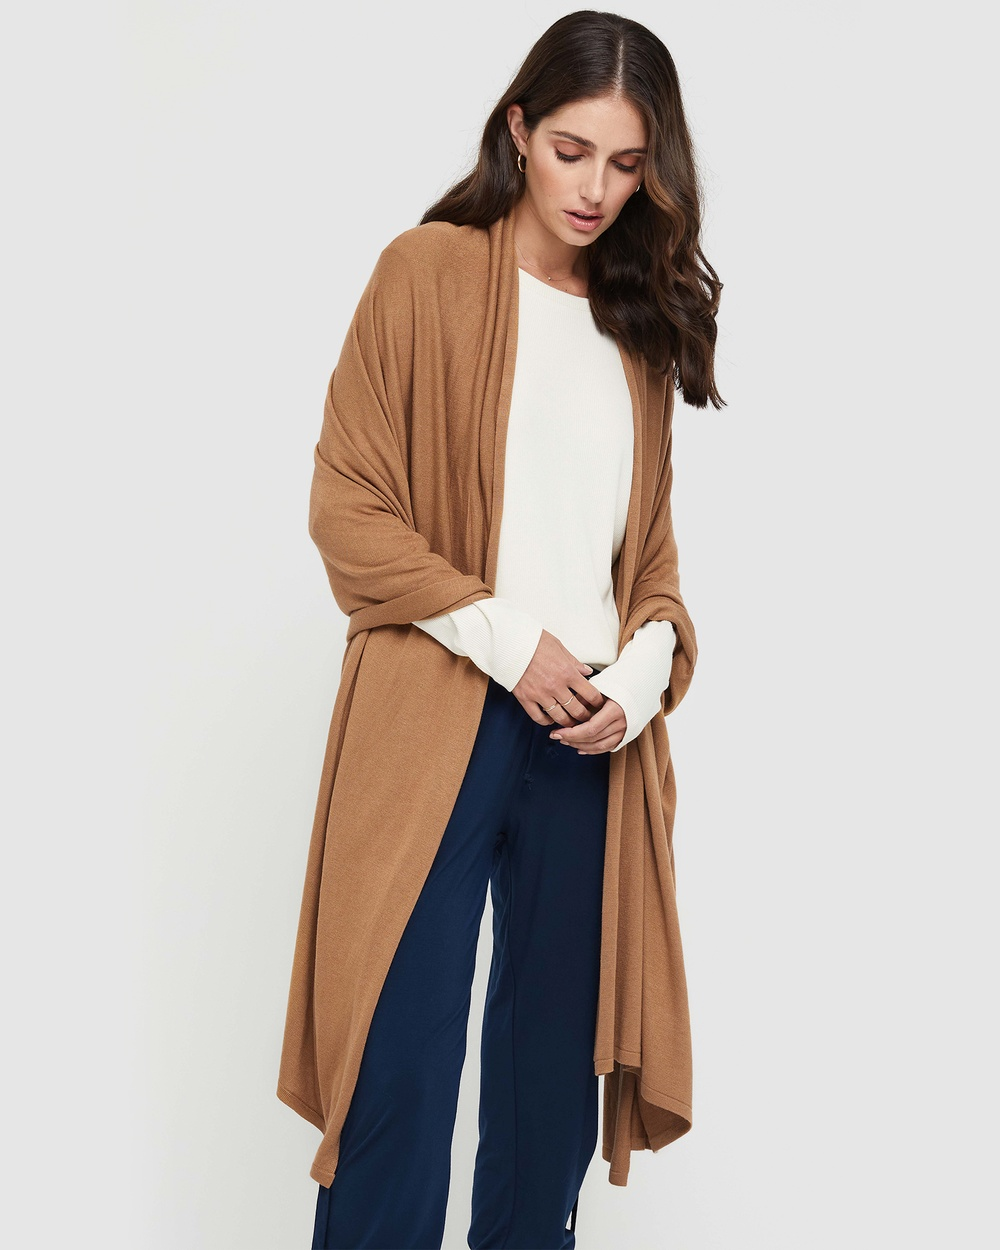 Bamboo Body Cashmere Wool Travel Wrap Wraps & Blankets Camel